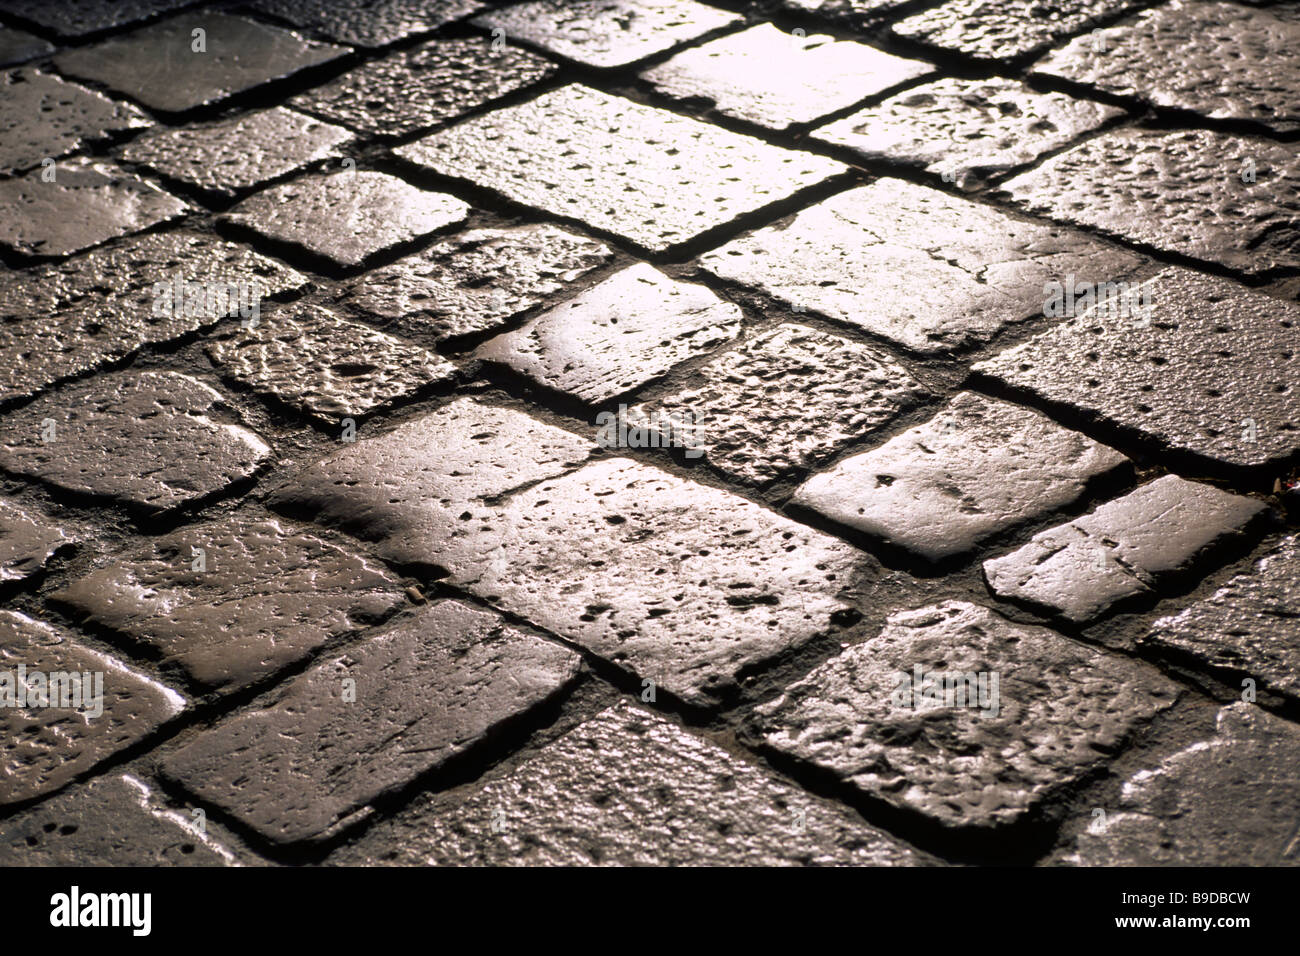 italy, basilicata, matera, sassi, cobbled street close up - Stock Image